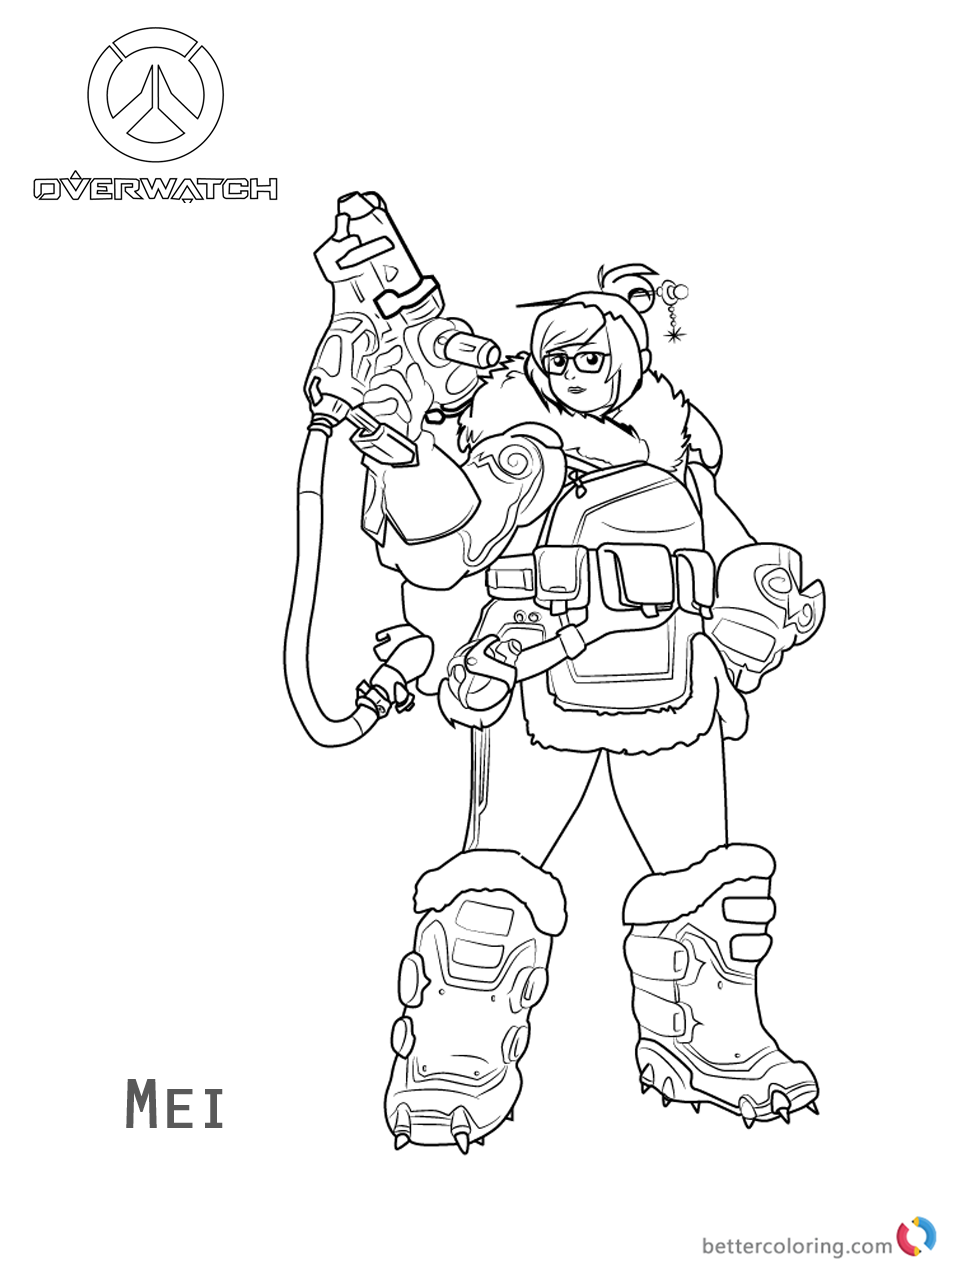 Mei from overwatch coloring pages free printable for Overwatch coloring pages